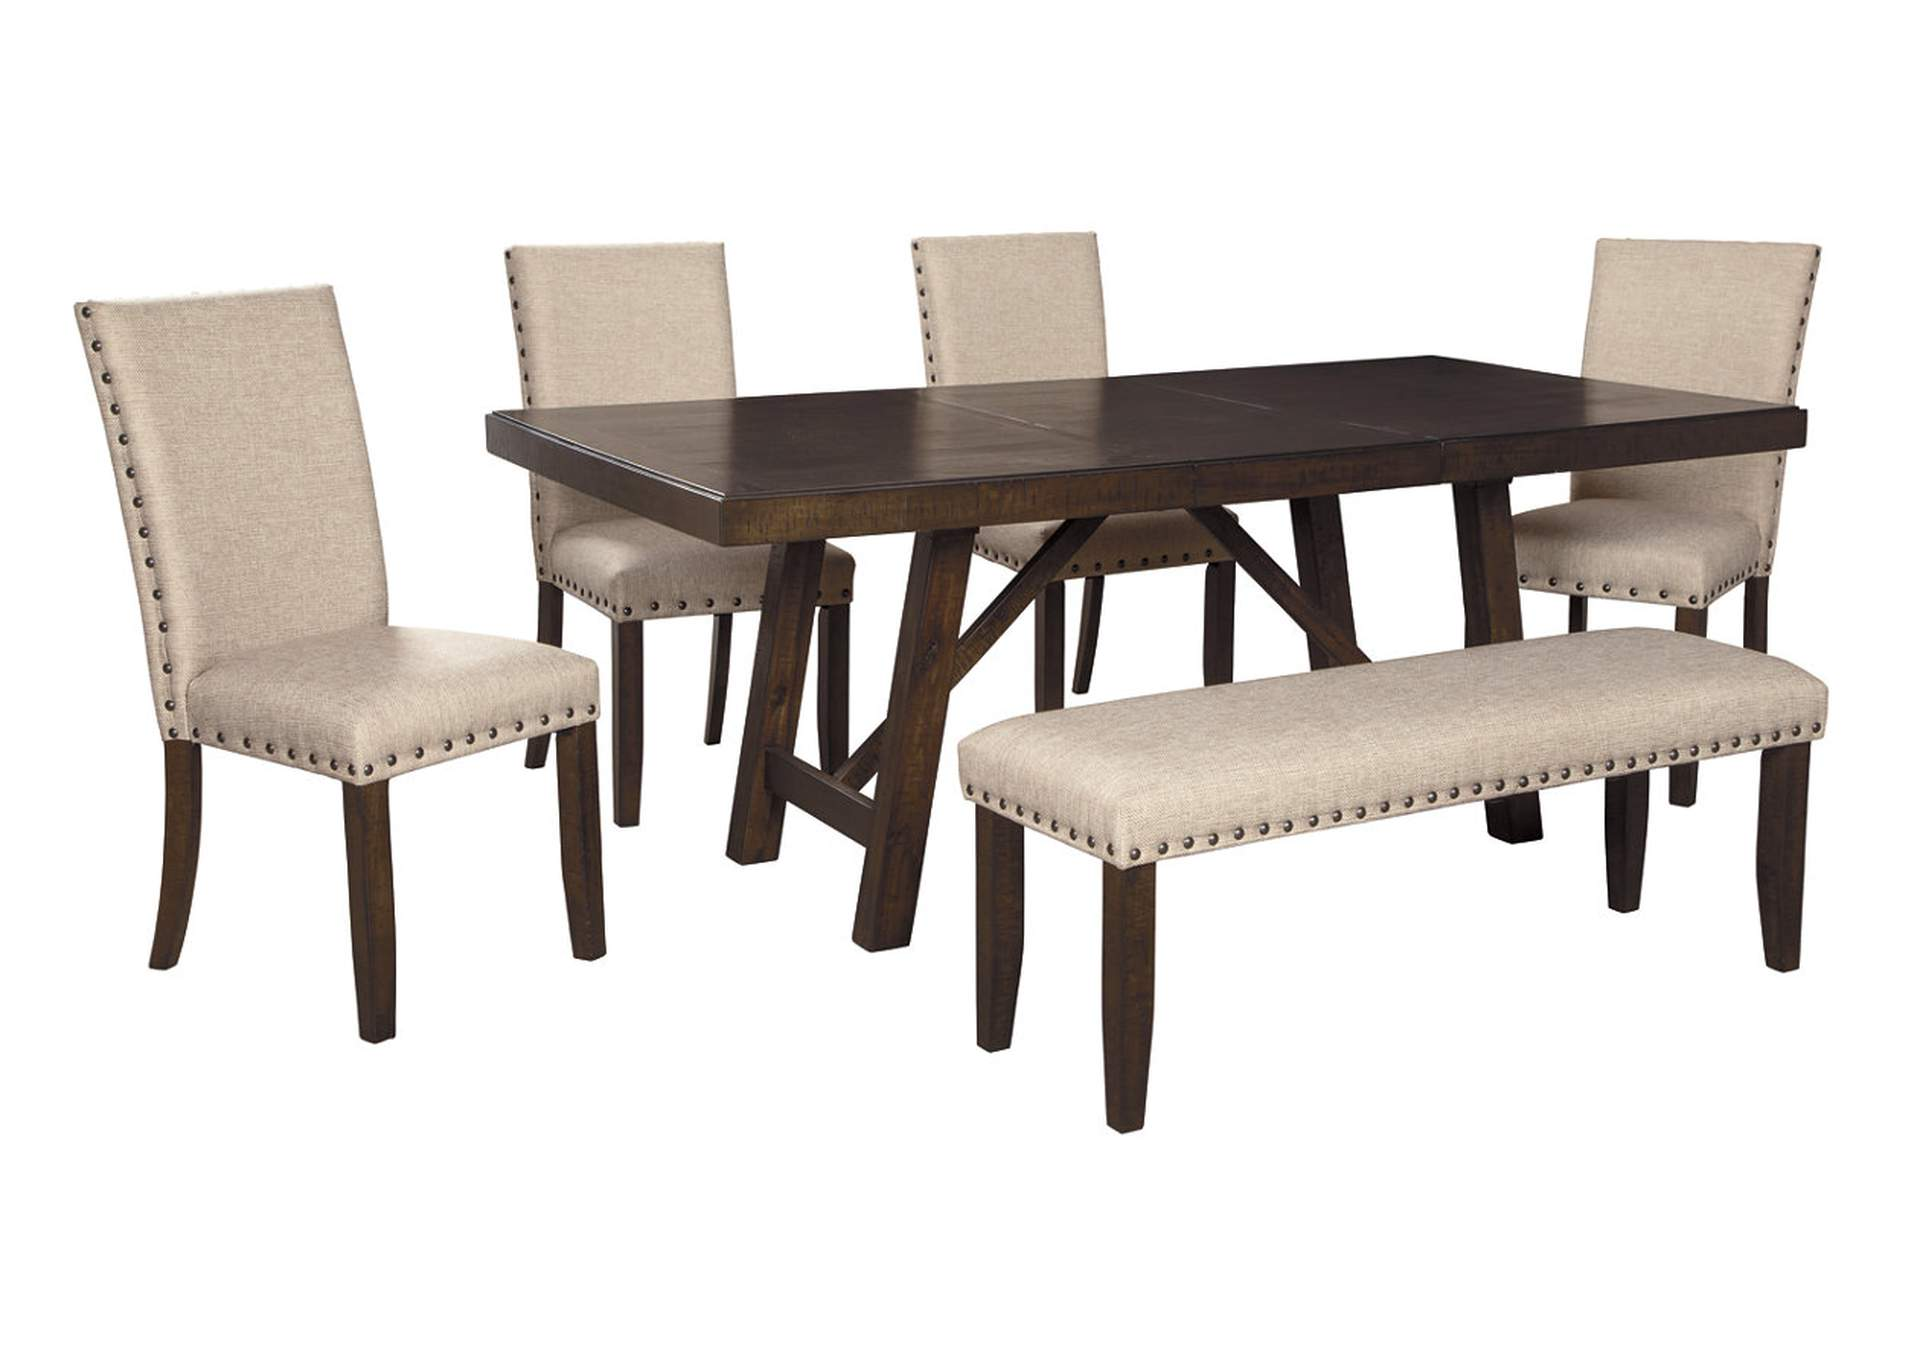 Rokane Light Brown Dining Table w/4 Side Chairs & Bench,Signature Design By Ashley